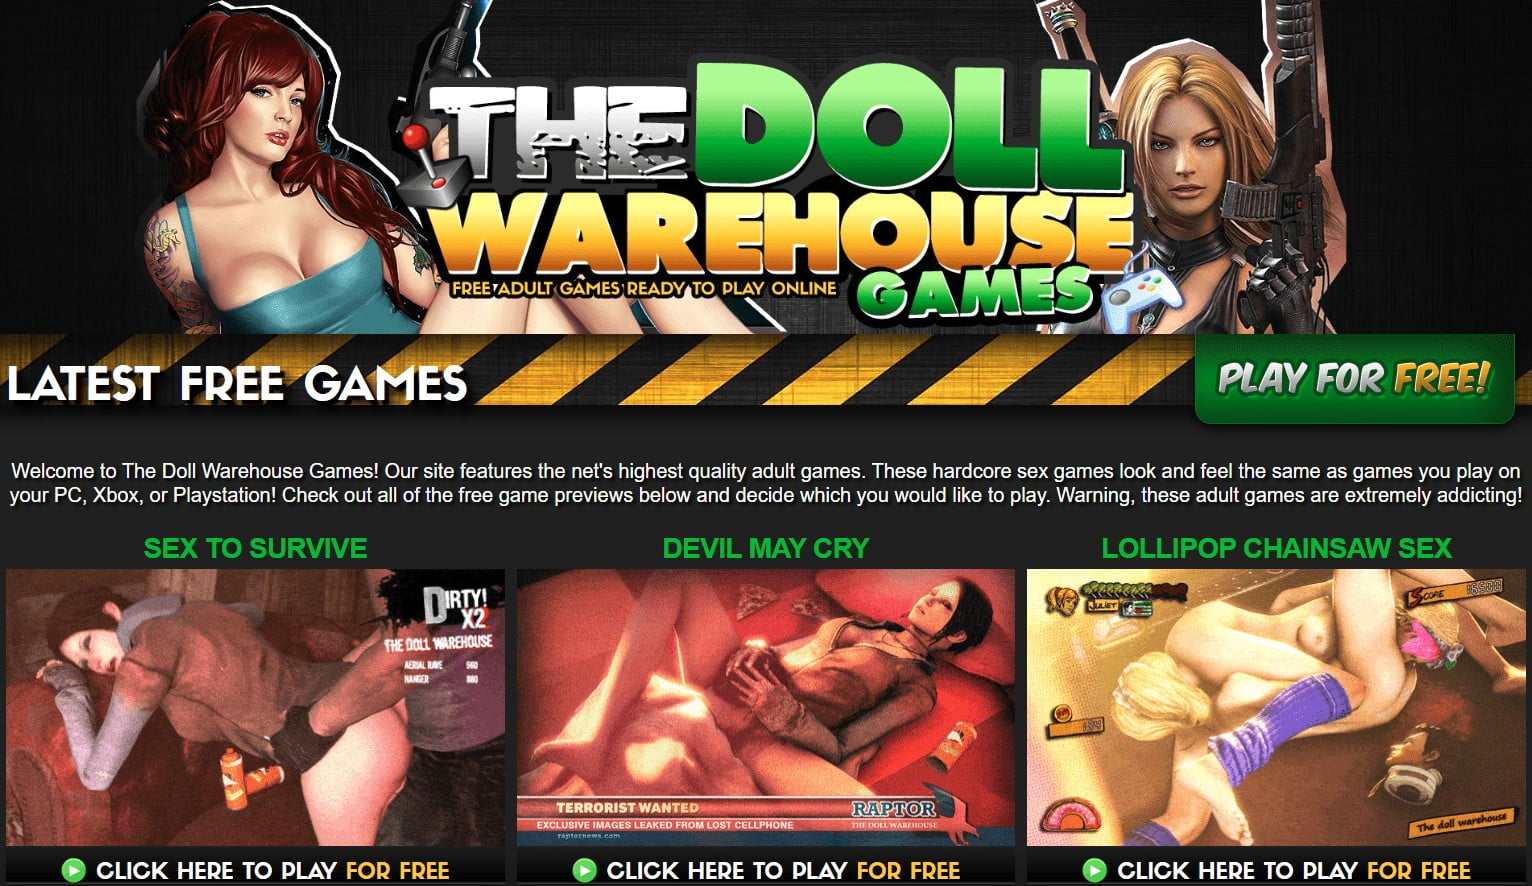 DollwarehouseGames, DollWarehouseGames